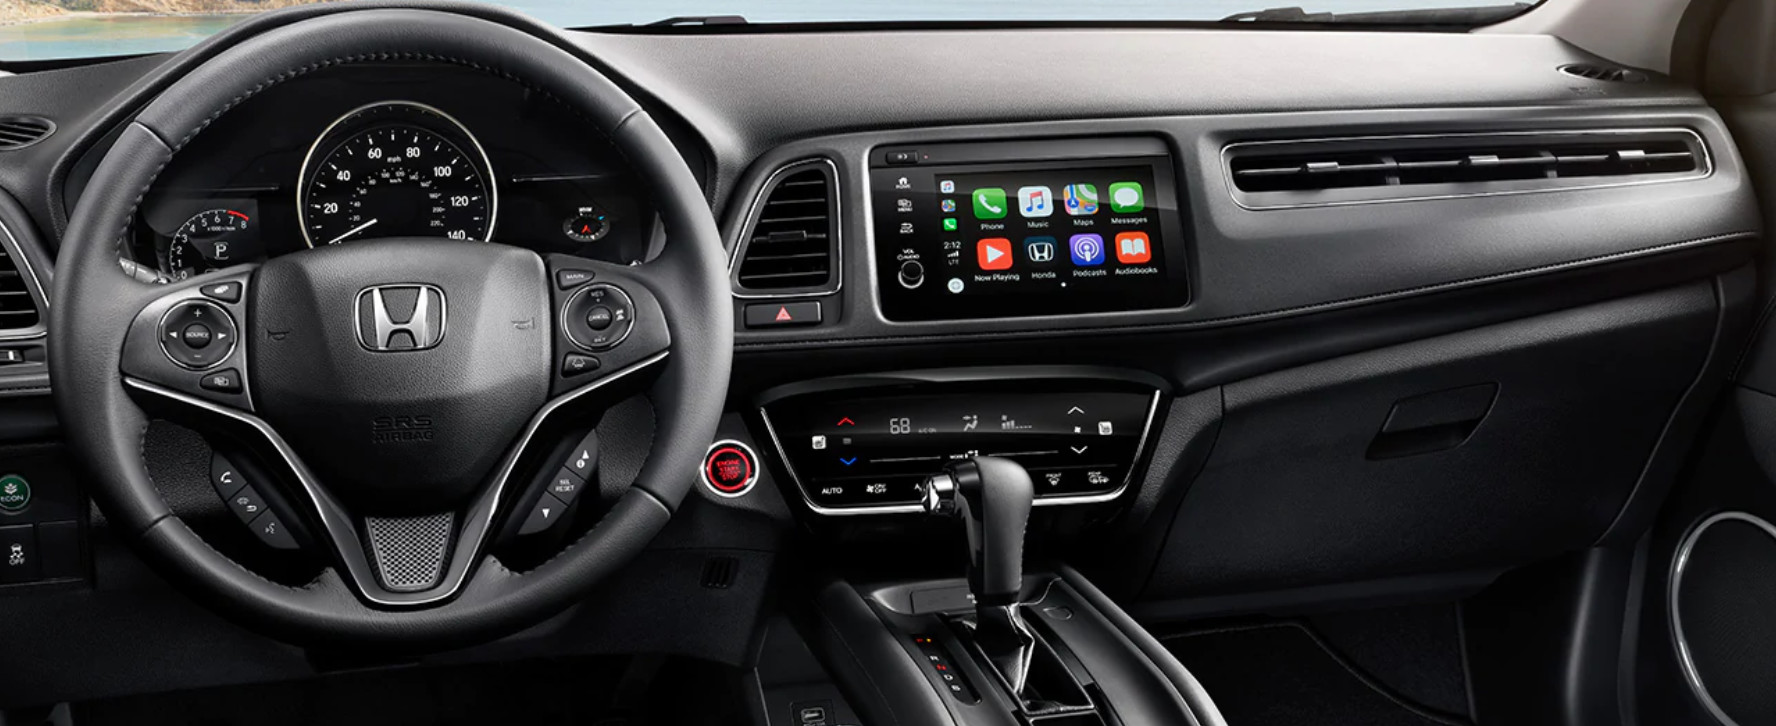 Tech Features in the HR-V